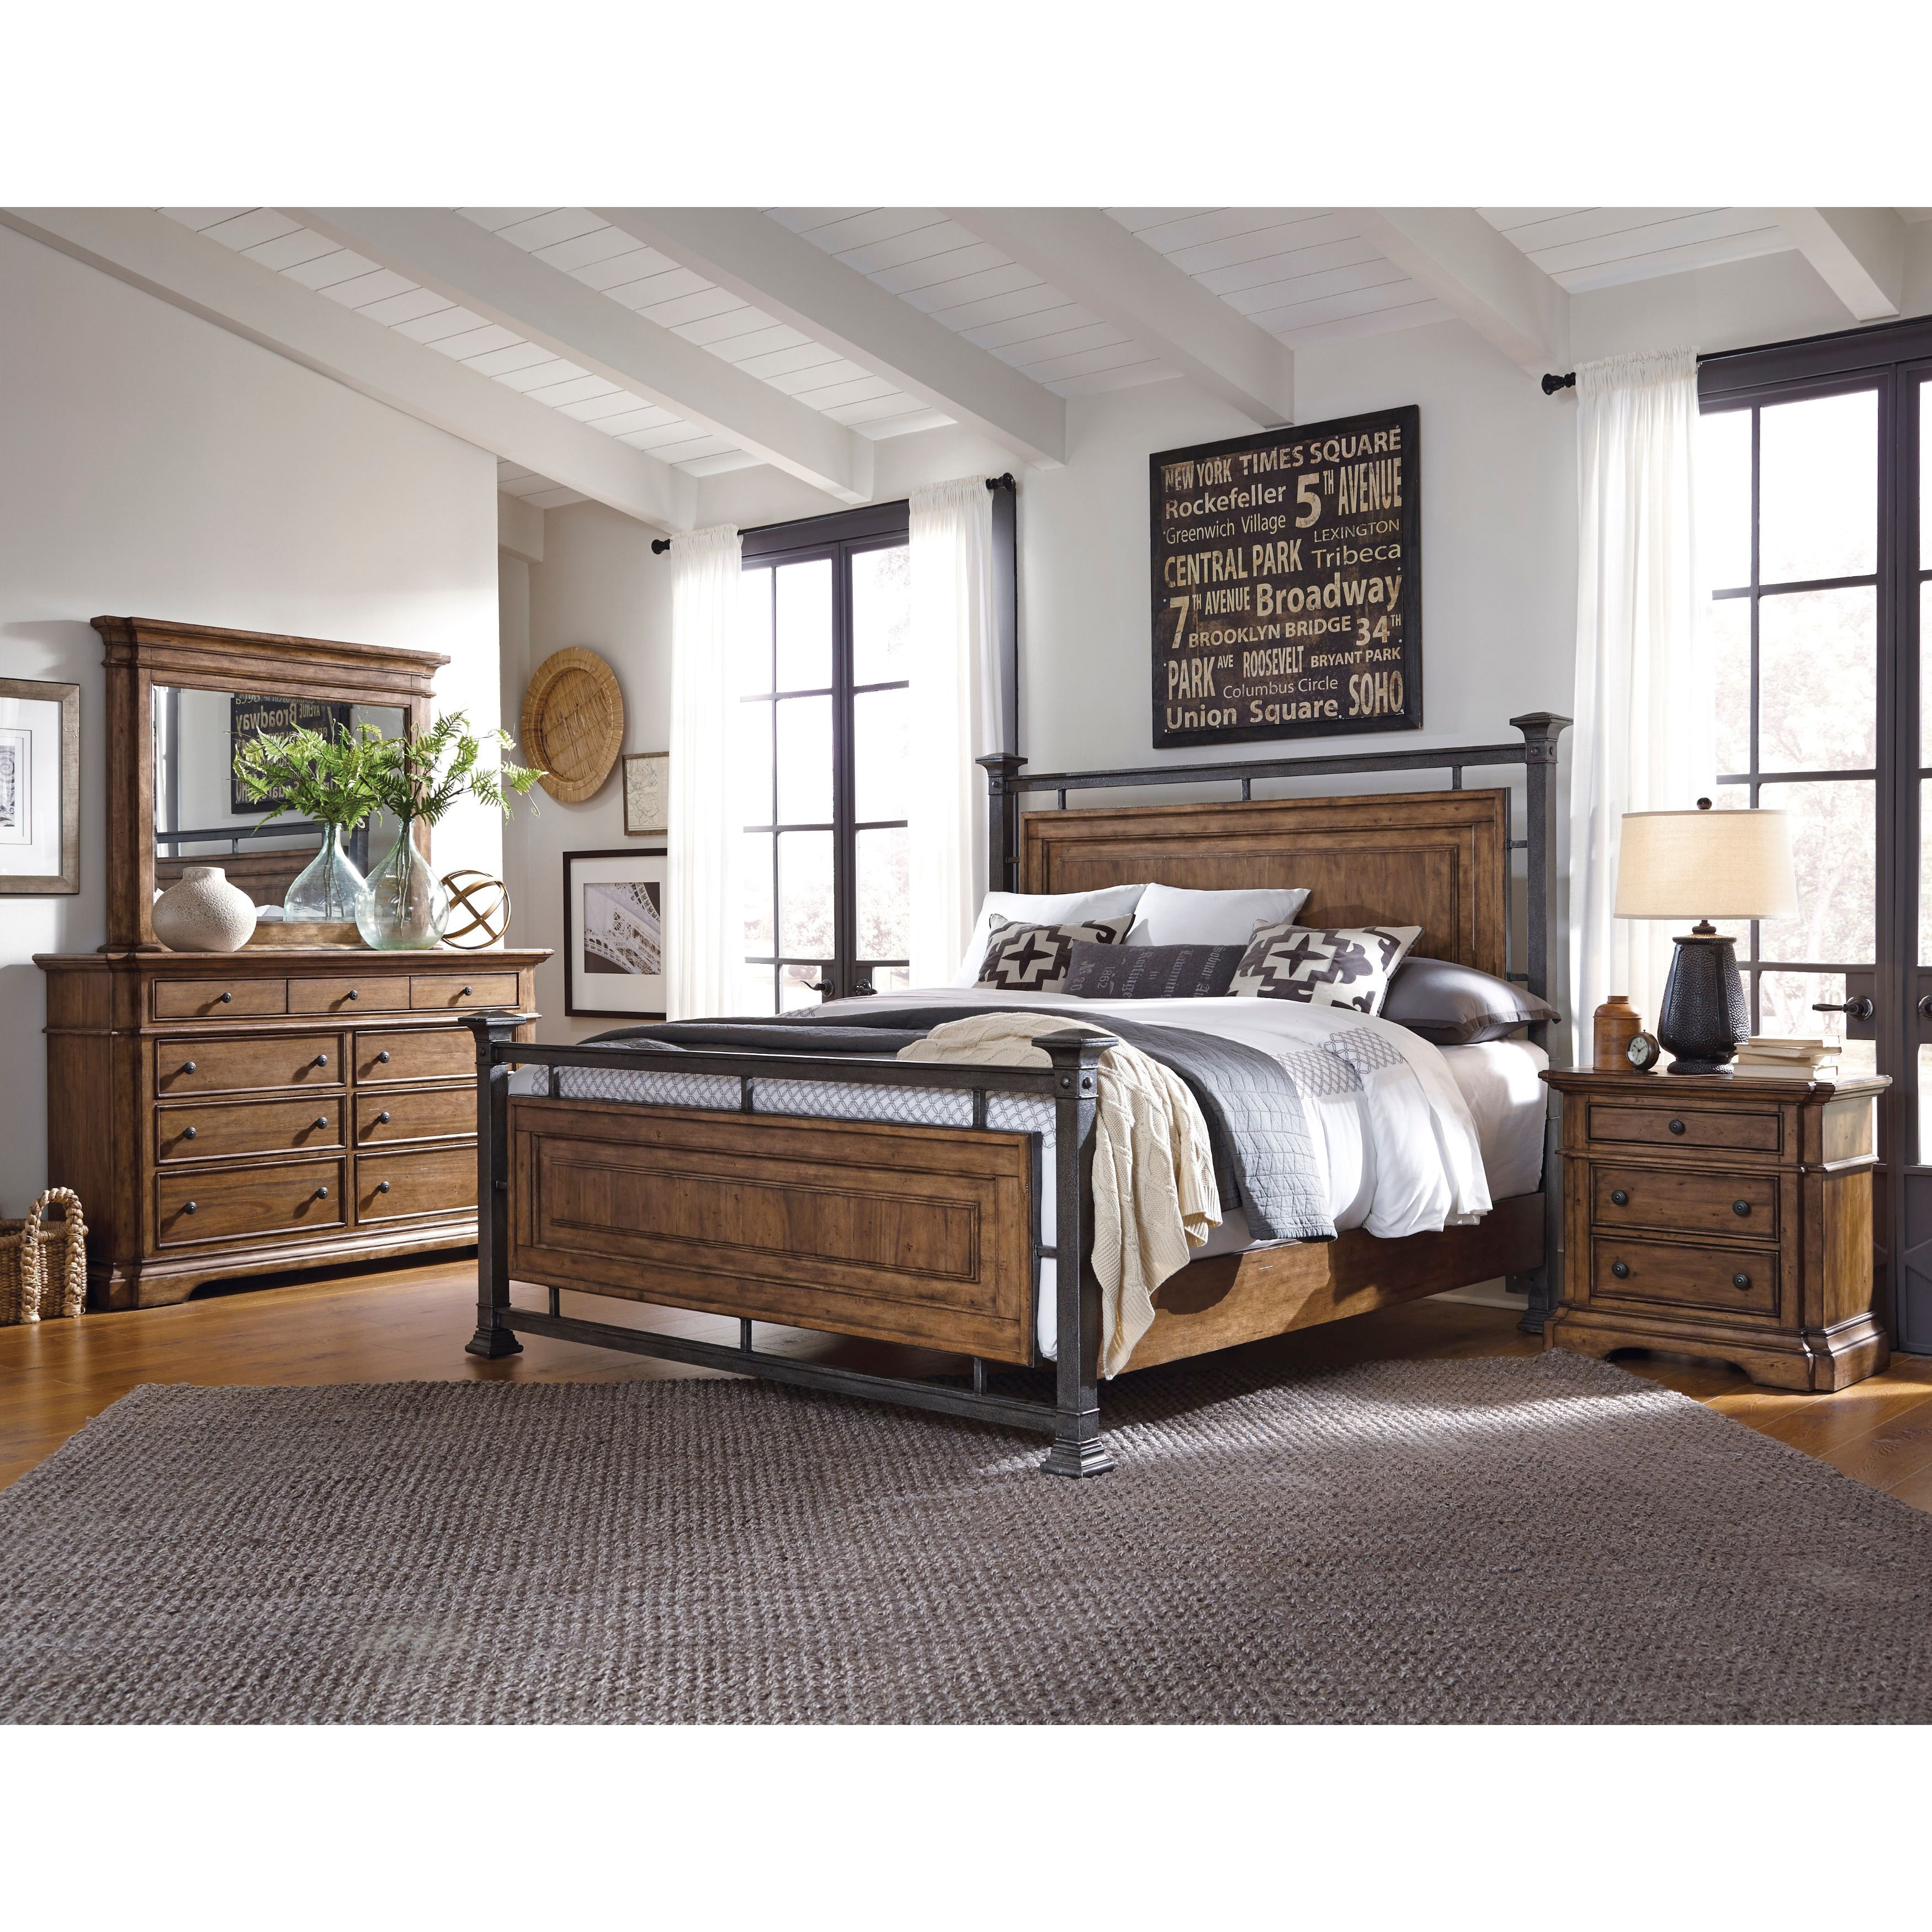 450+ Queen Size Bedroom Sets Nyc Newest